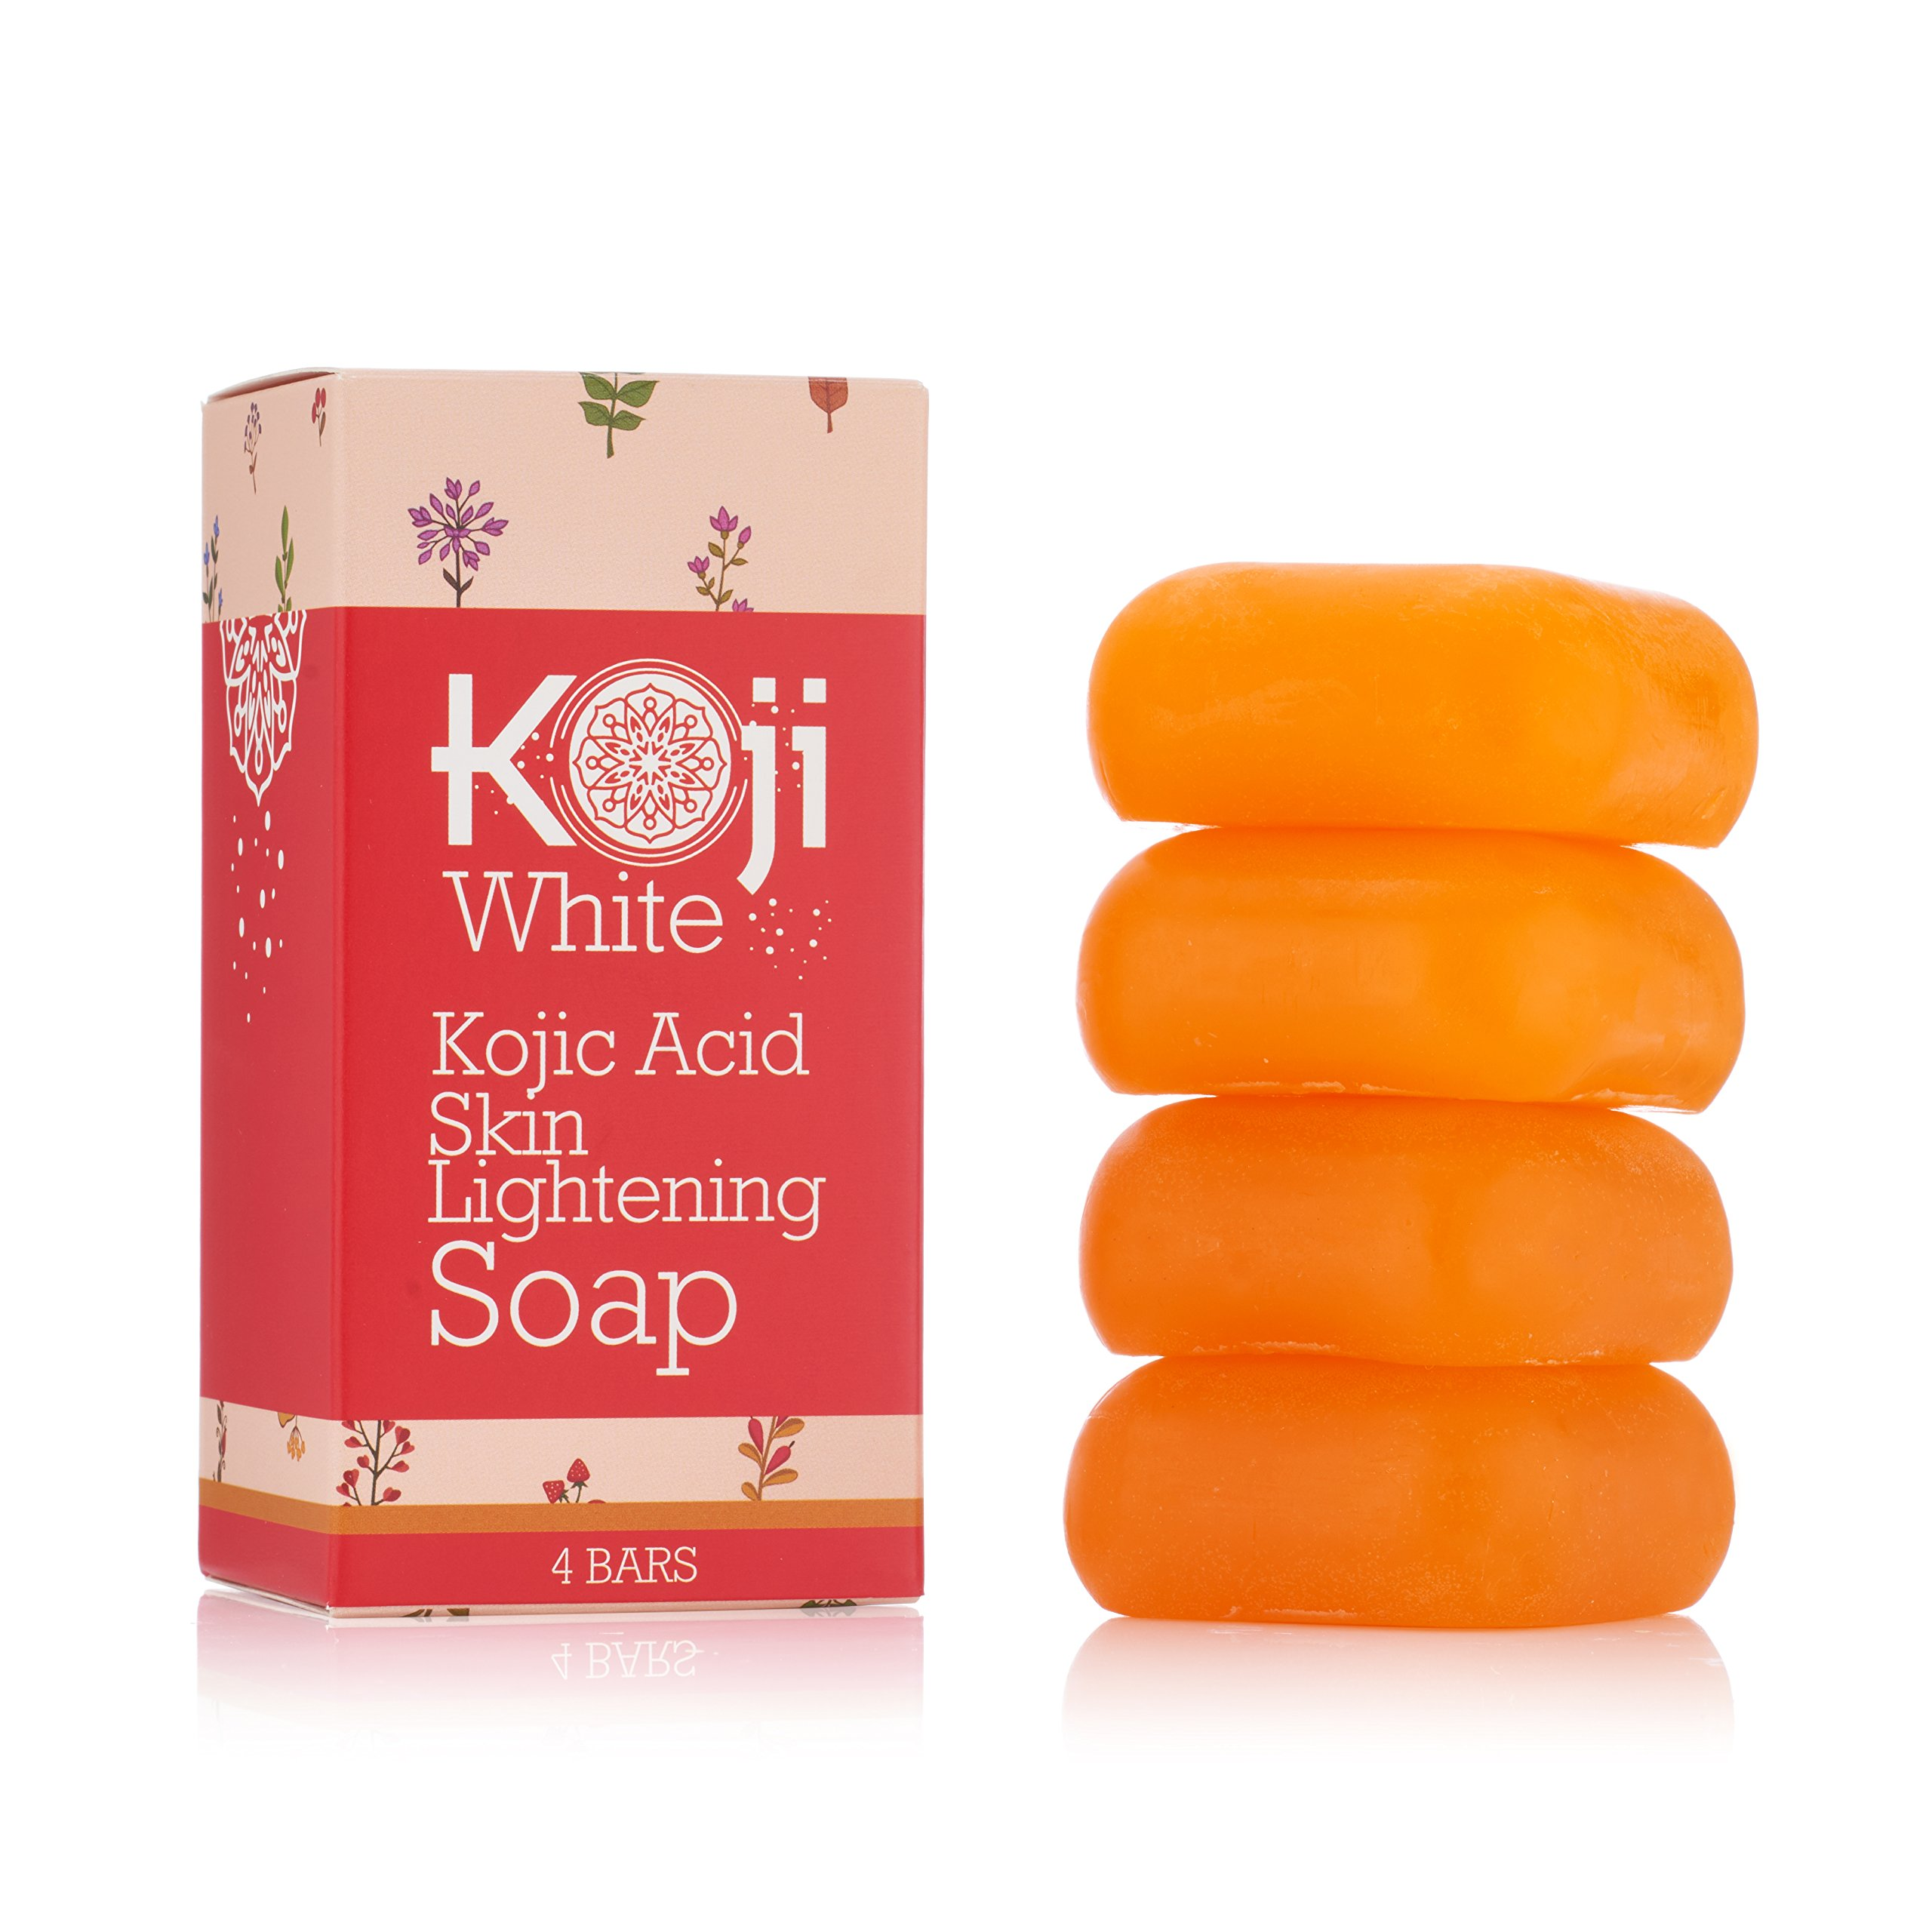 Pure Kojic Acid Skin Lightening Soap ( 2.82 oz / 4 Bars ) - Naturally Whitening for Tone Adjustment & Bleaching Skin - Remove Freckles, Fade Age Spots, Anti-aging, Acne Scars, Sun Spots Damage